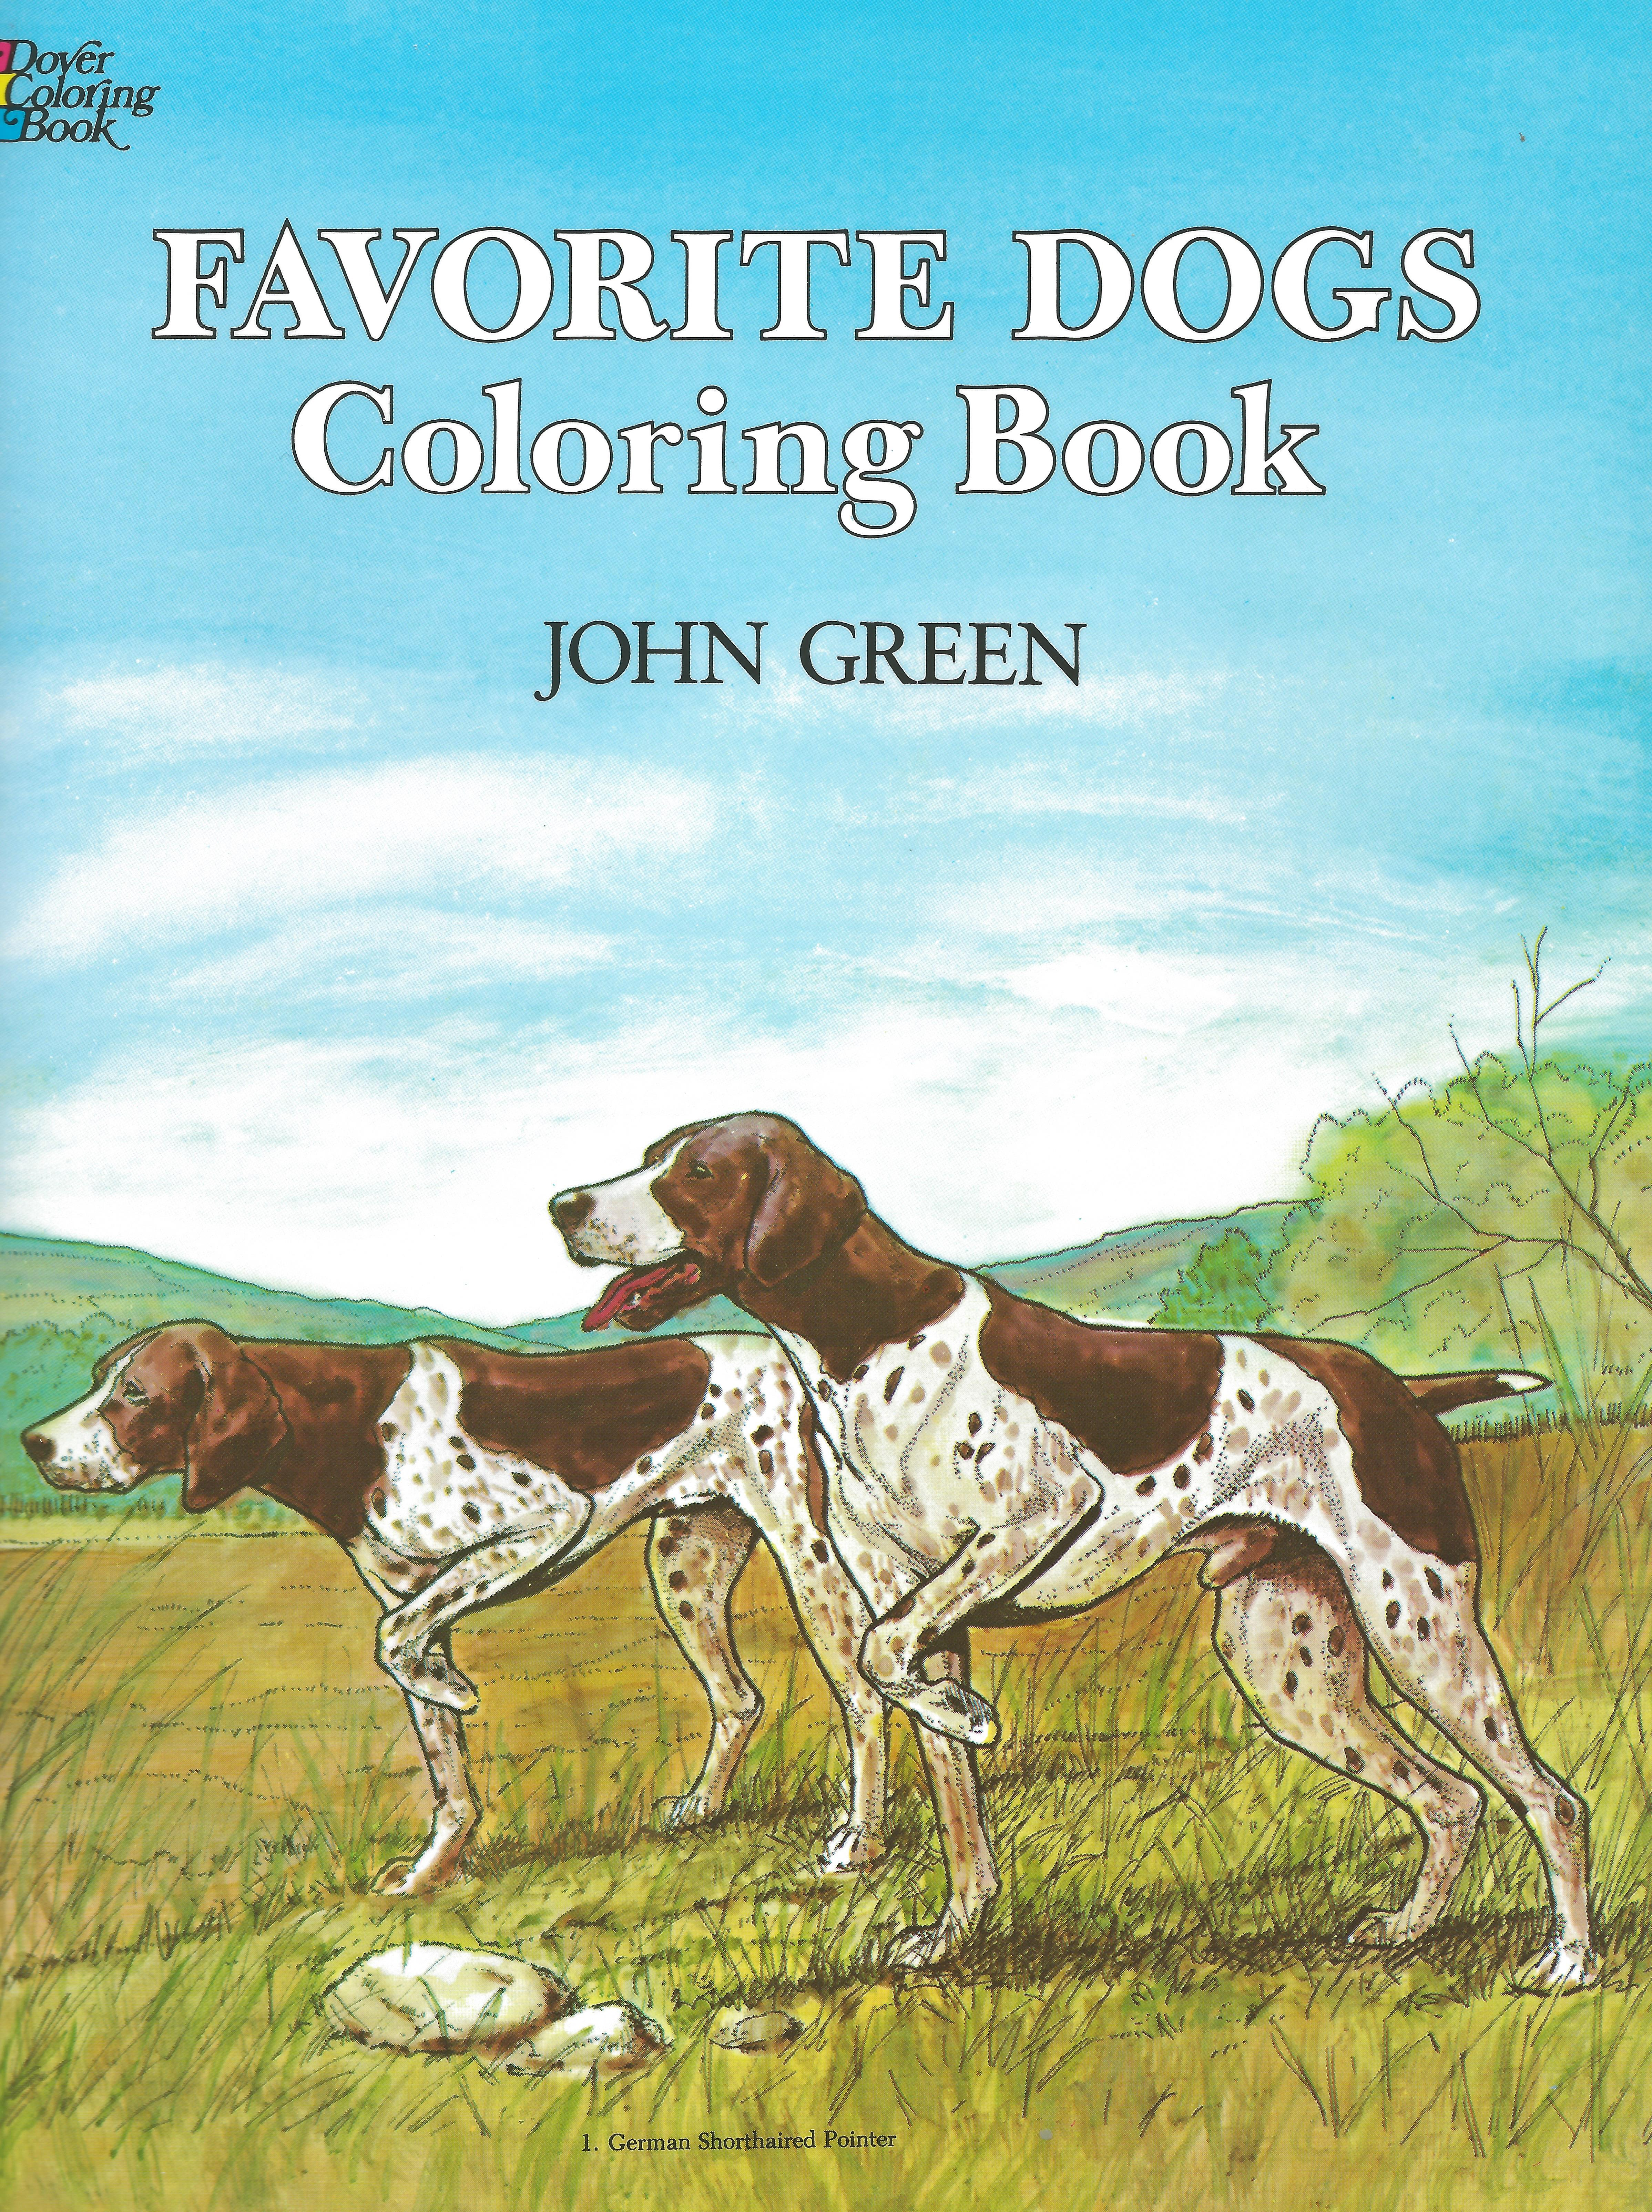 FAVORITE DOGS COLORING BOOK John Green